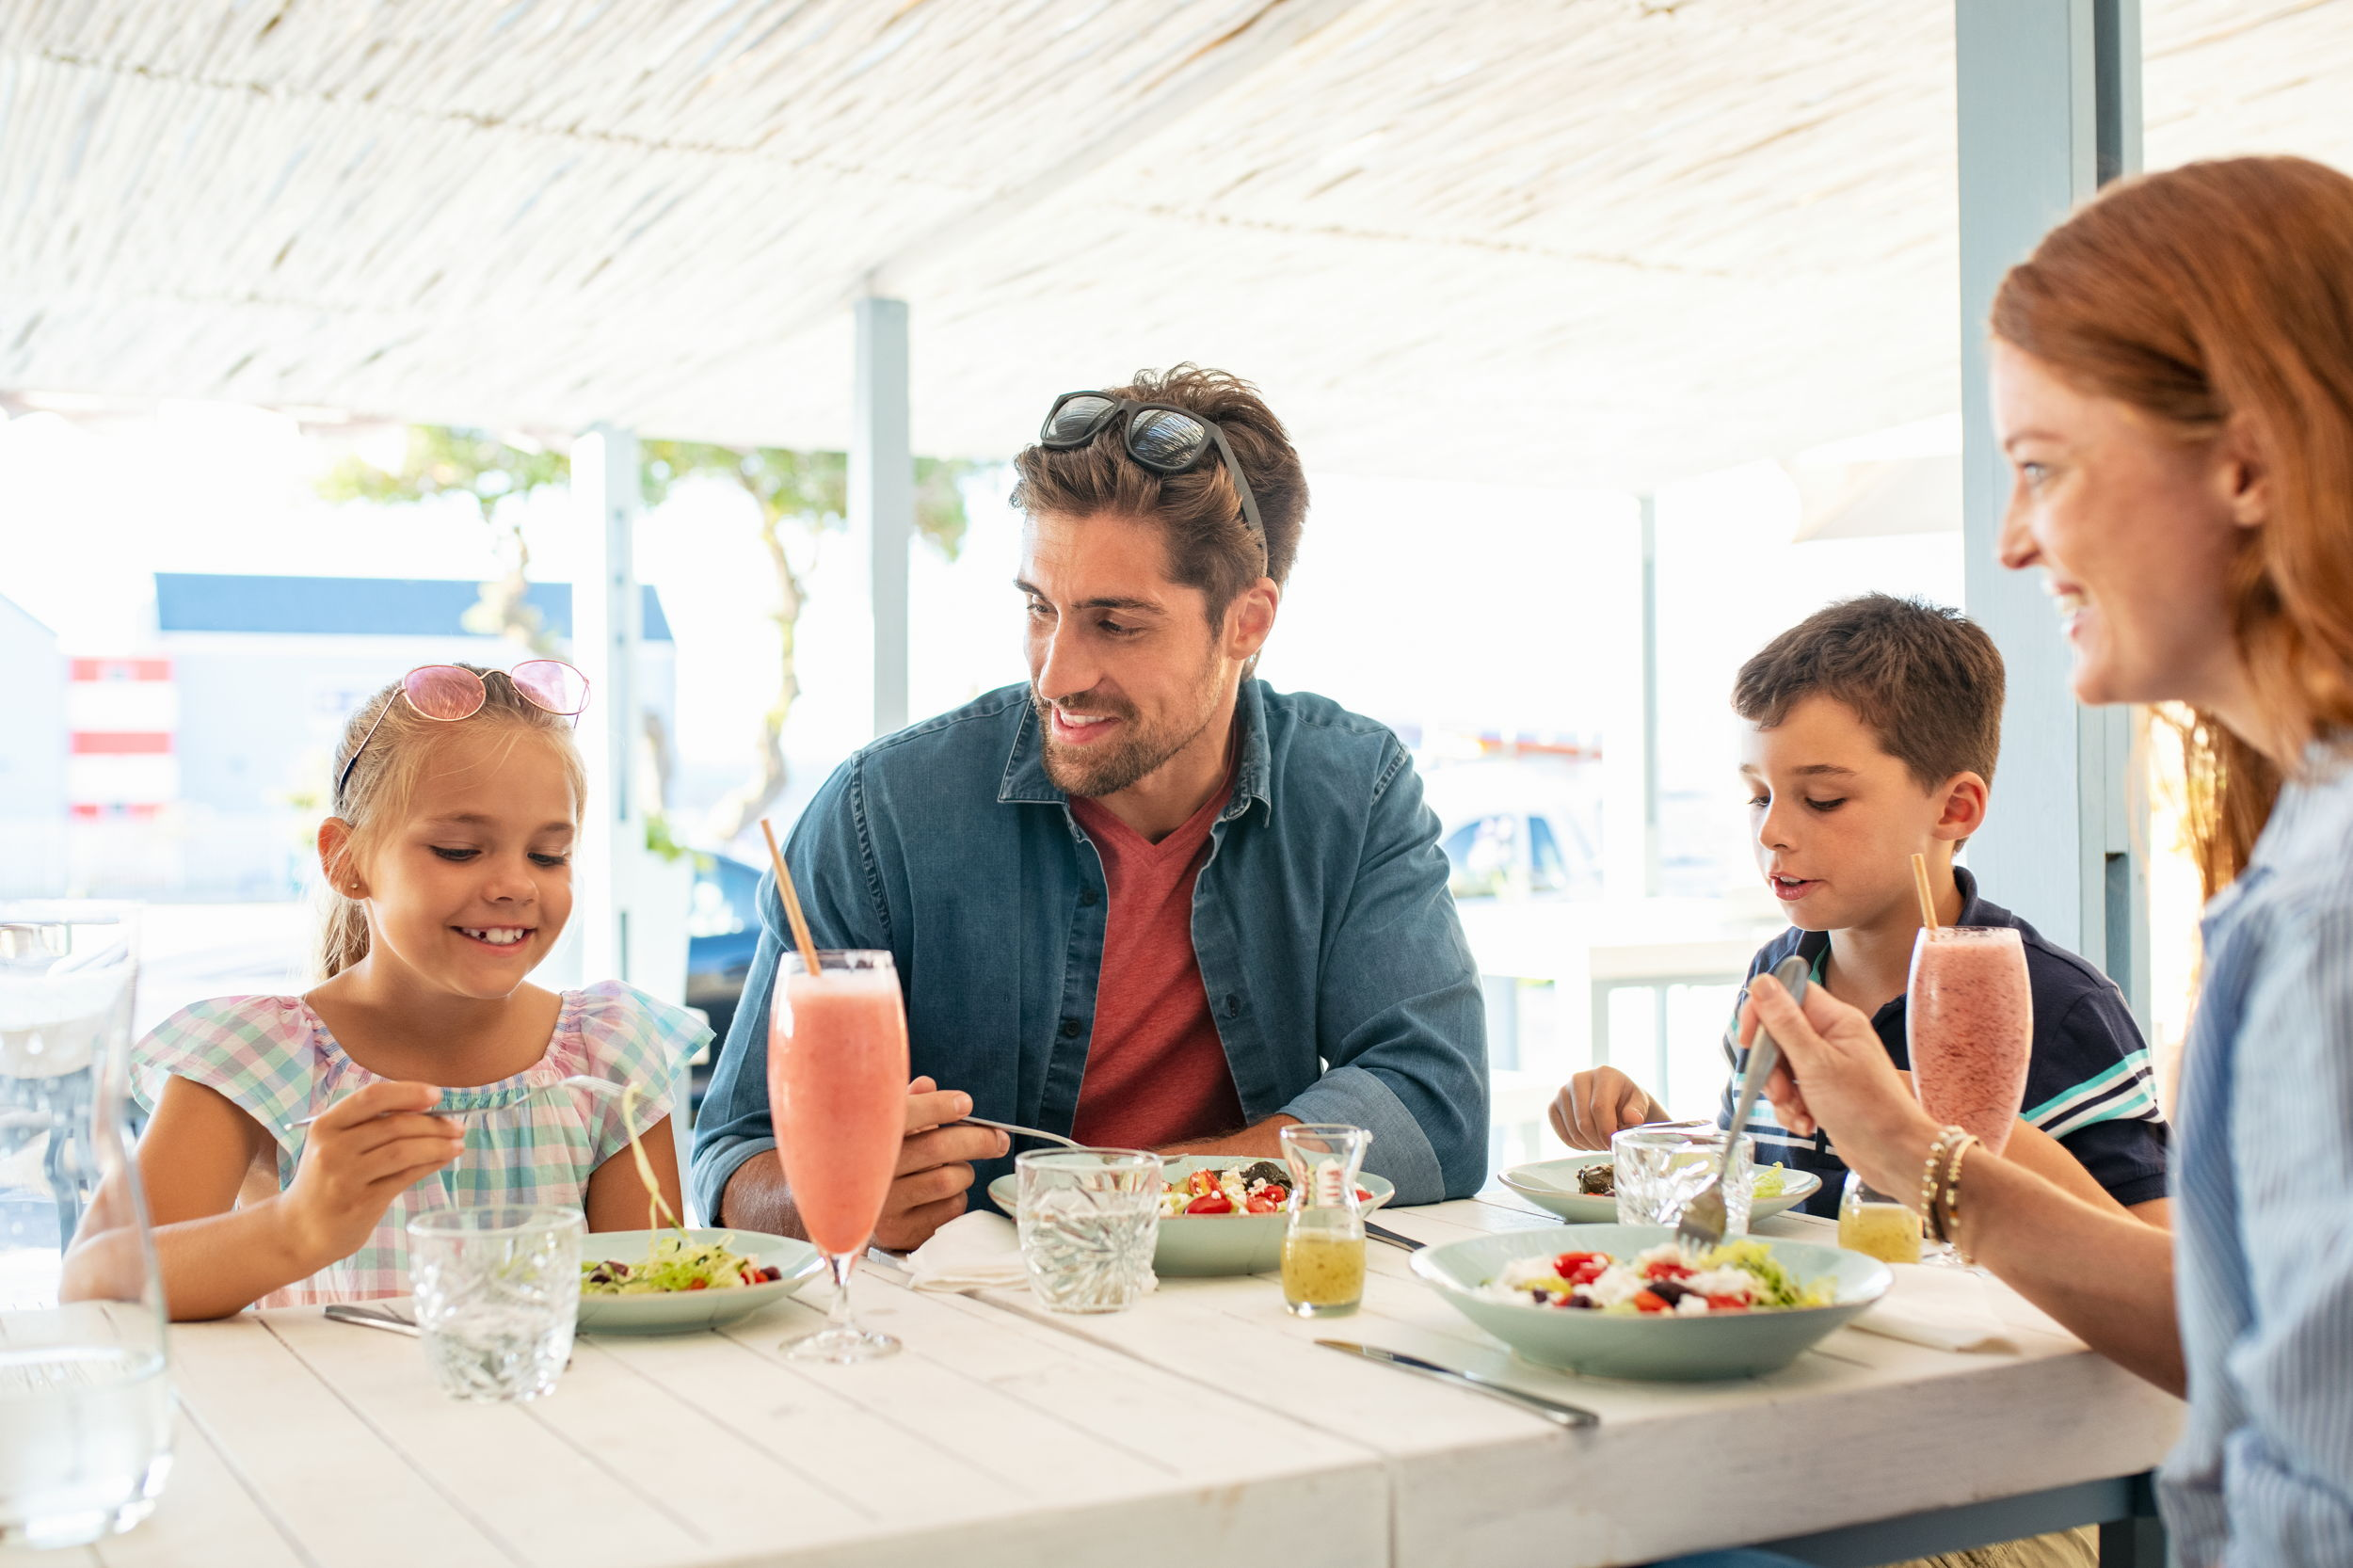 Healthy Eating Habits for Kids l healthy habits for kids l healthy eating for kids l healthy eating kids l kids healthy eating plate